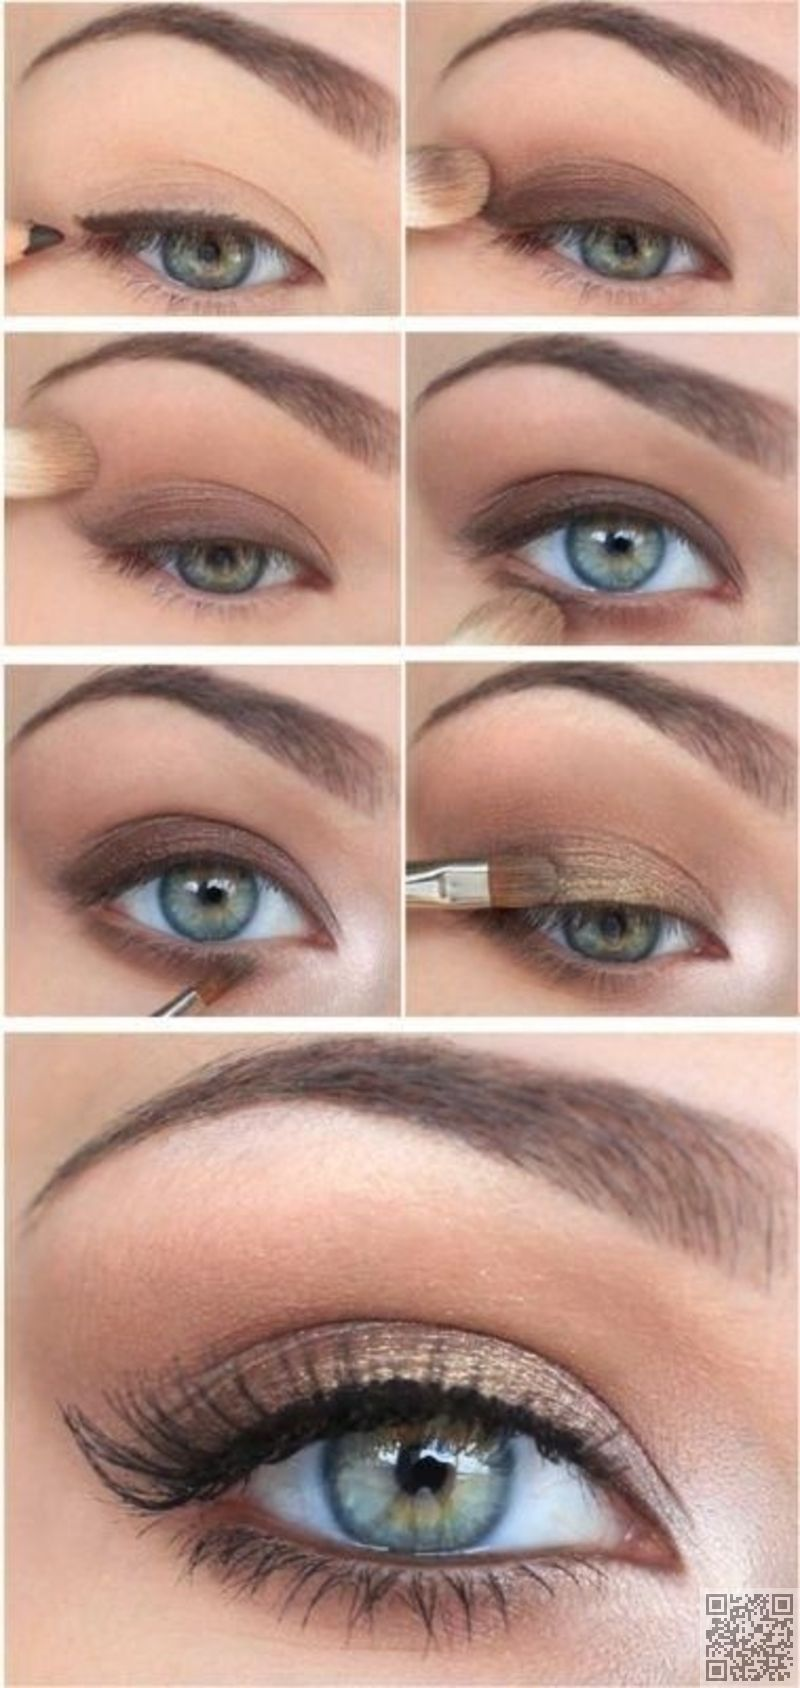 Pair Up Neutral Tones To Highlight Your Lashes And Make Your Eyes Look Brighter Eye Makeup Tutorial Christmas Eye Makeup Eye Makeup